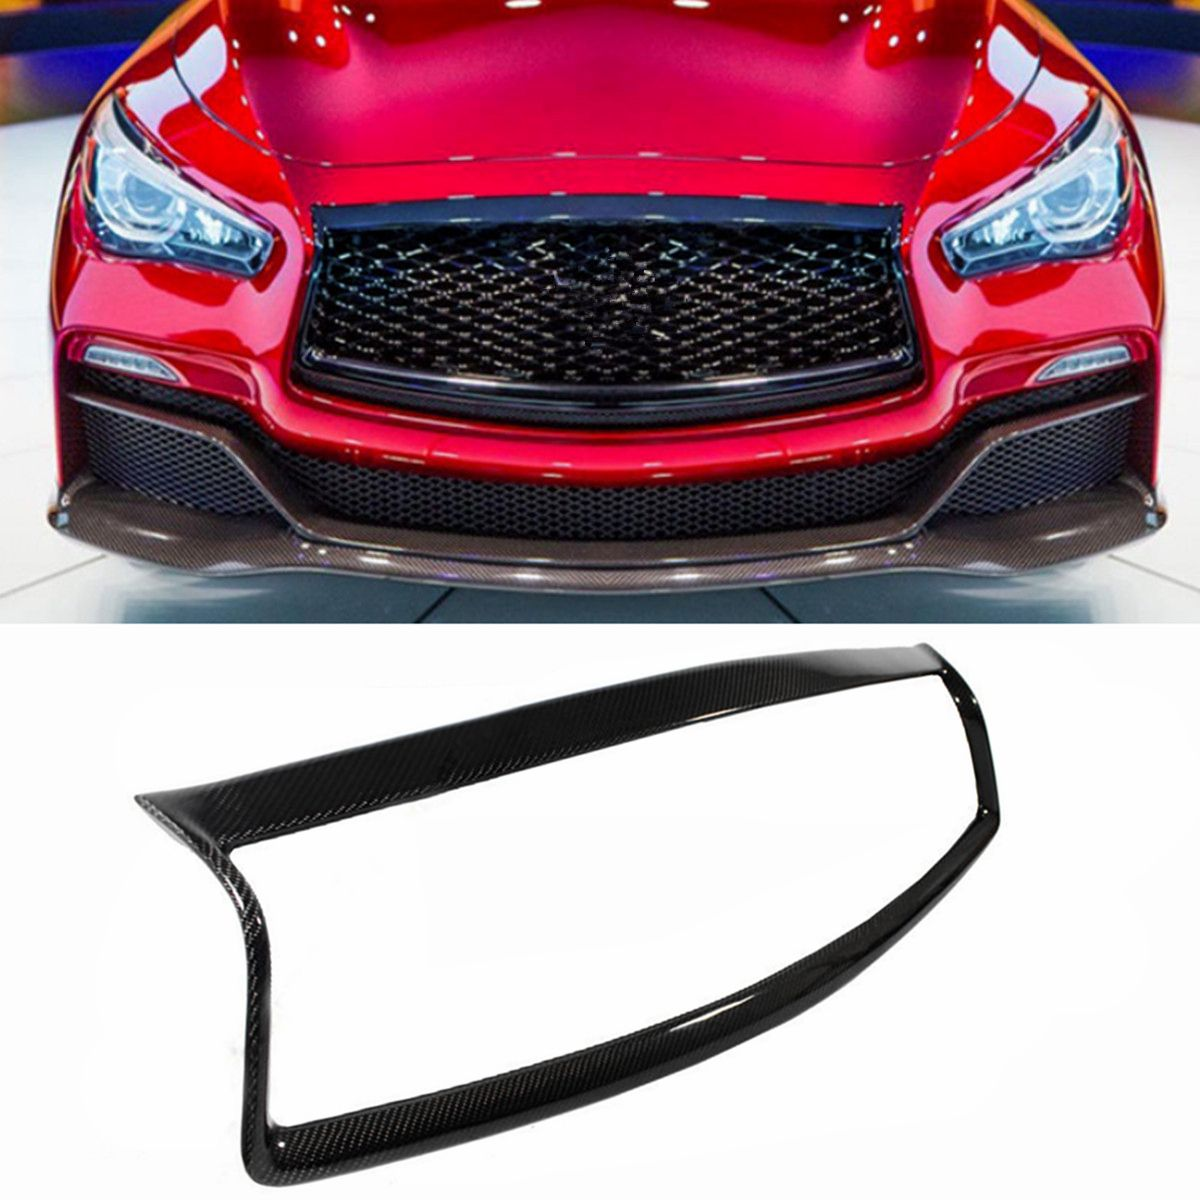 High Quality Real Carbon Fiber Car Front Grill Outline Moulding Trim Cover Infiniti Q50 2014-2016 All Models